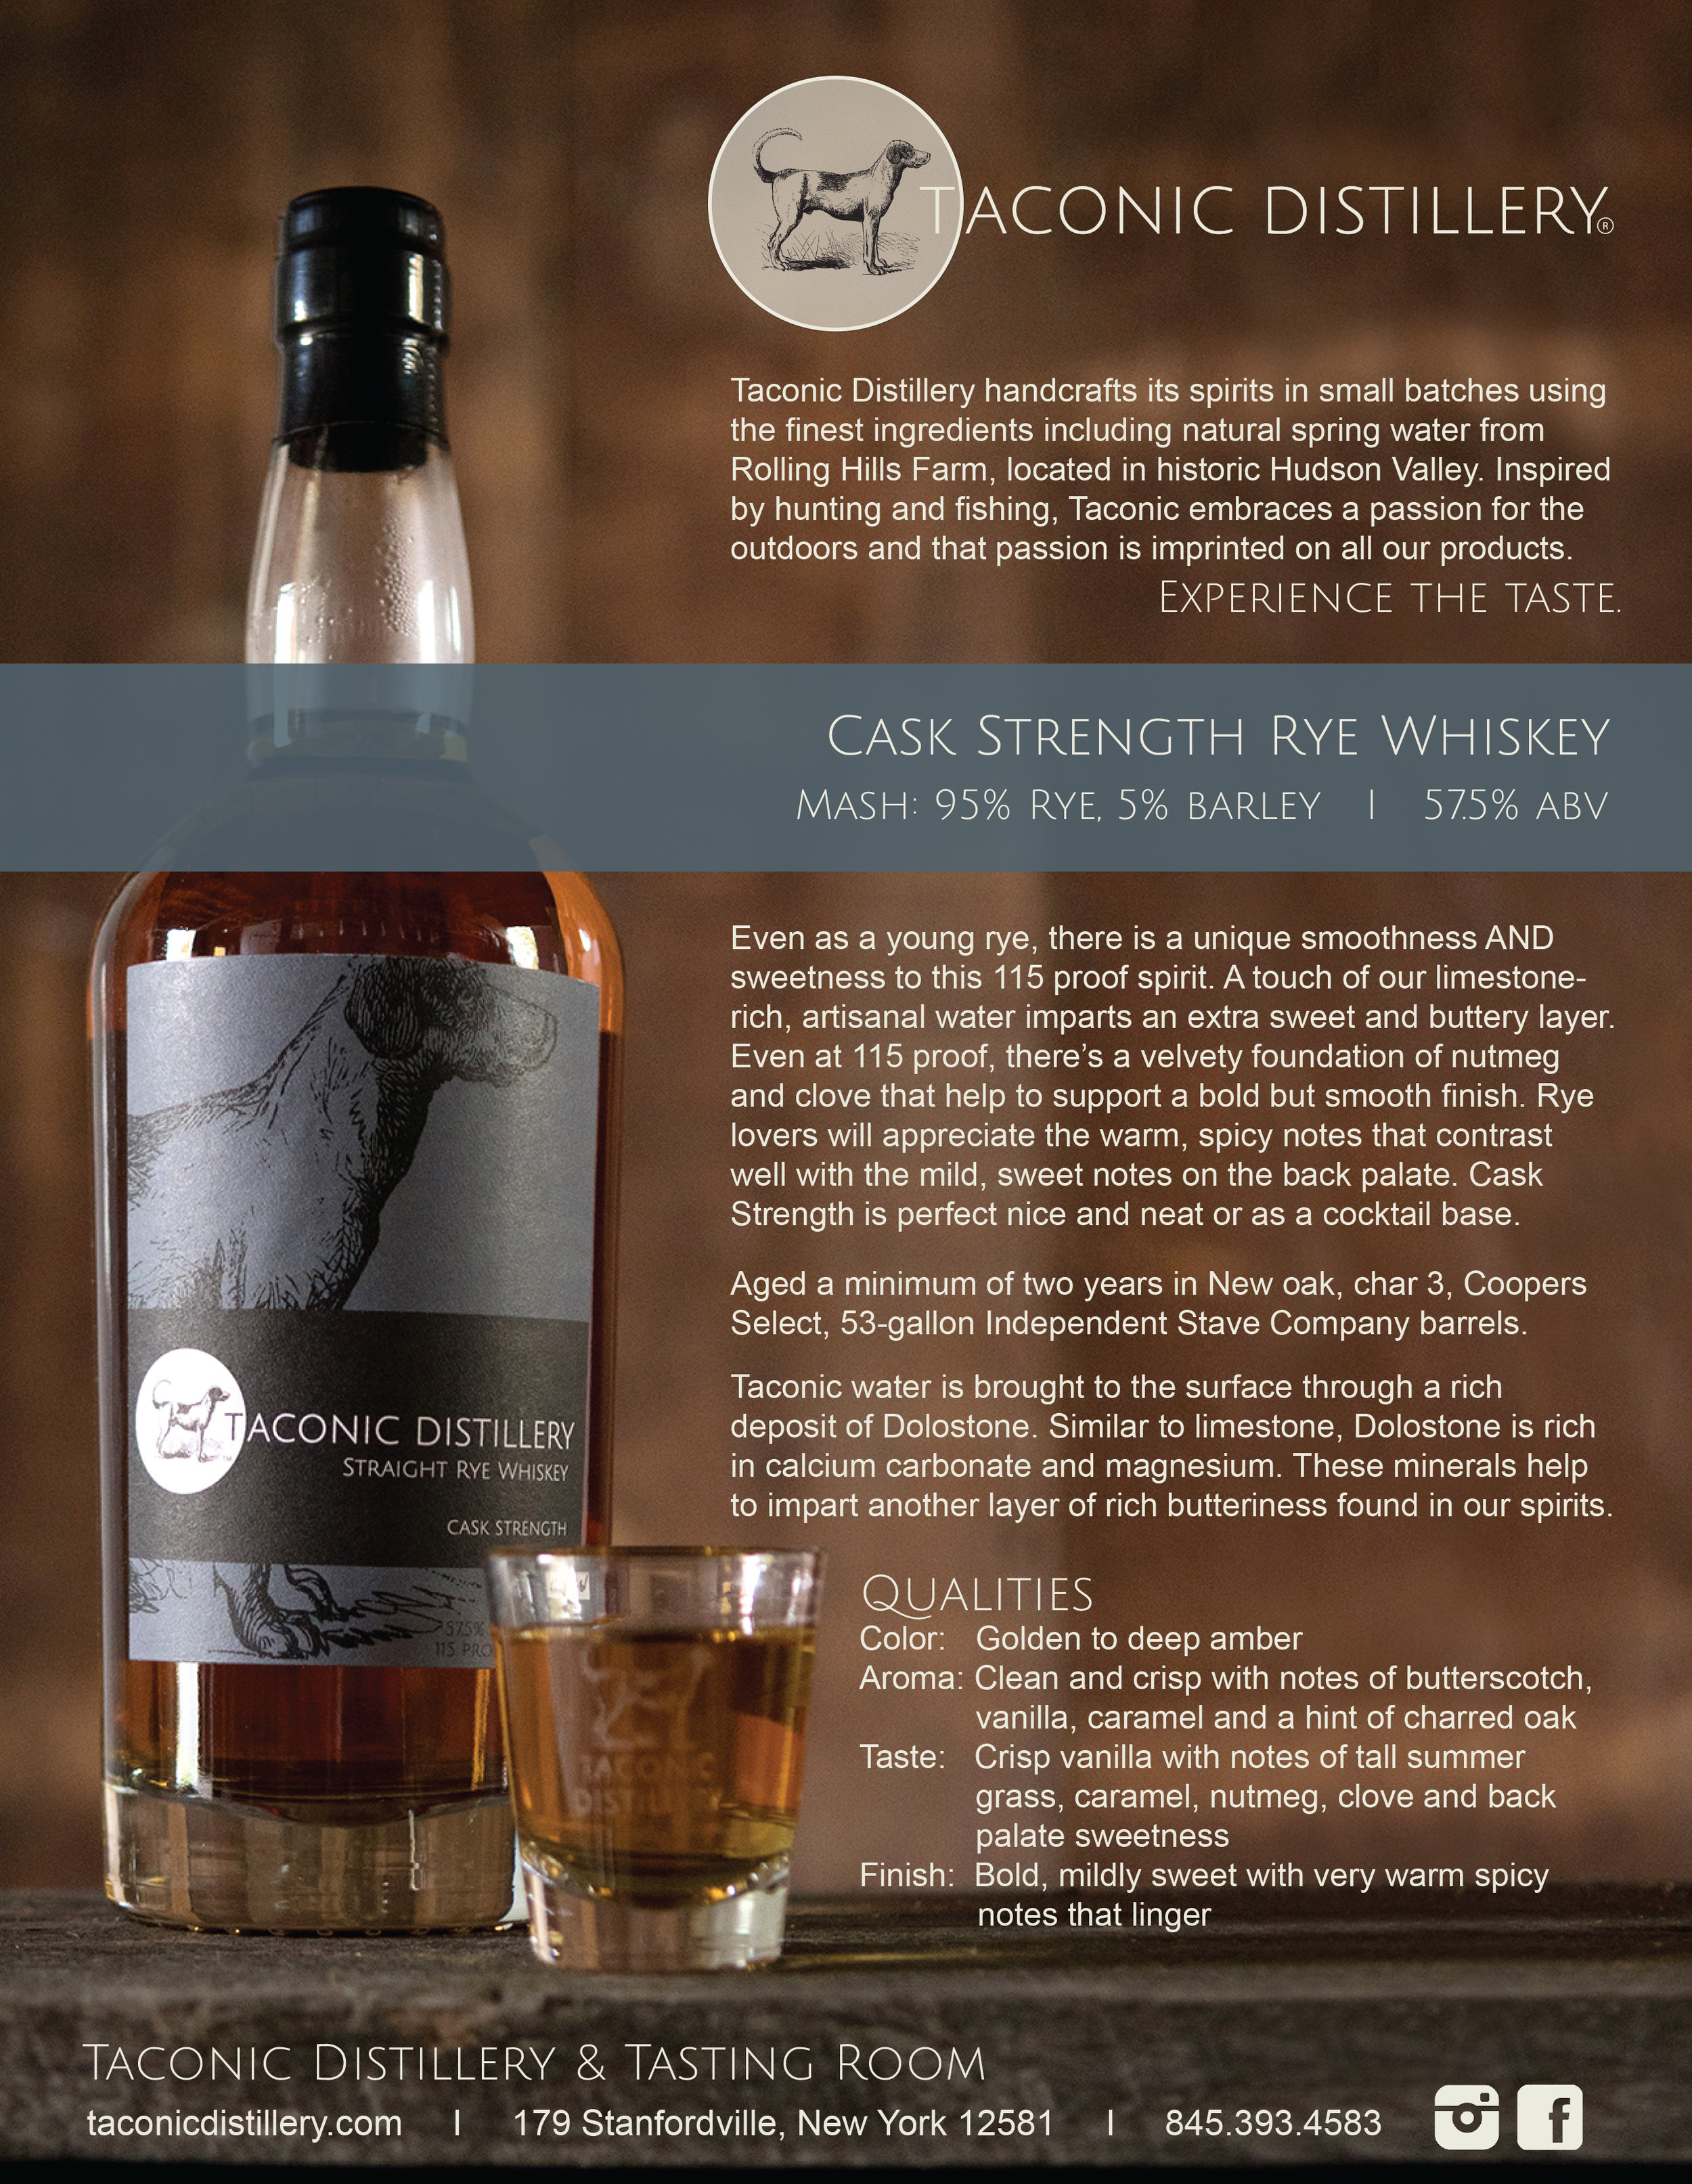 Cask Strength Rye Whiskey